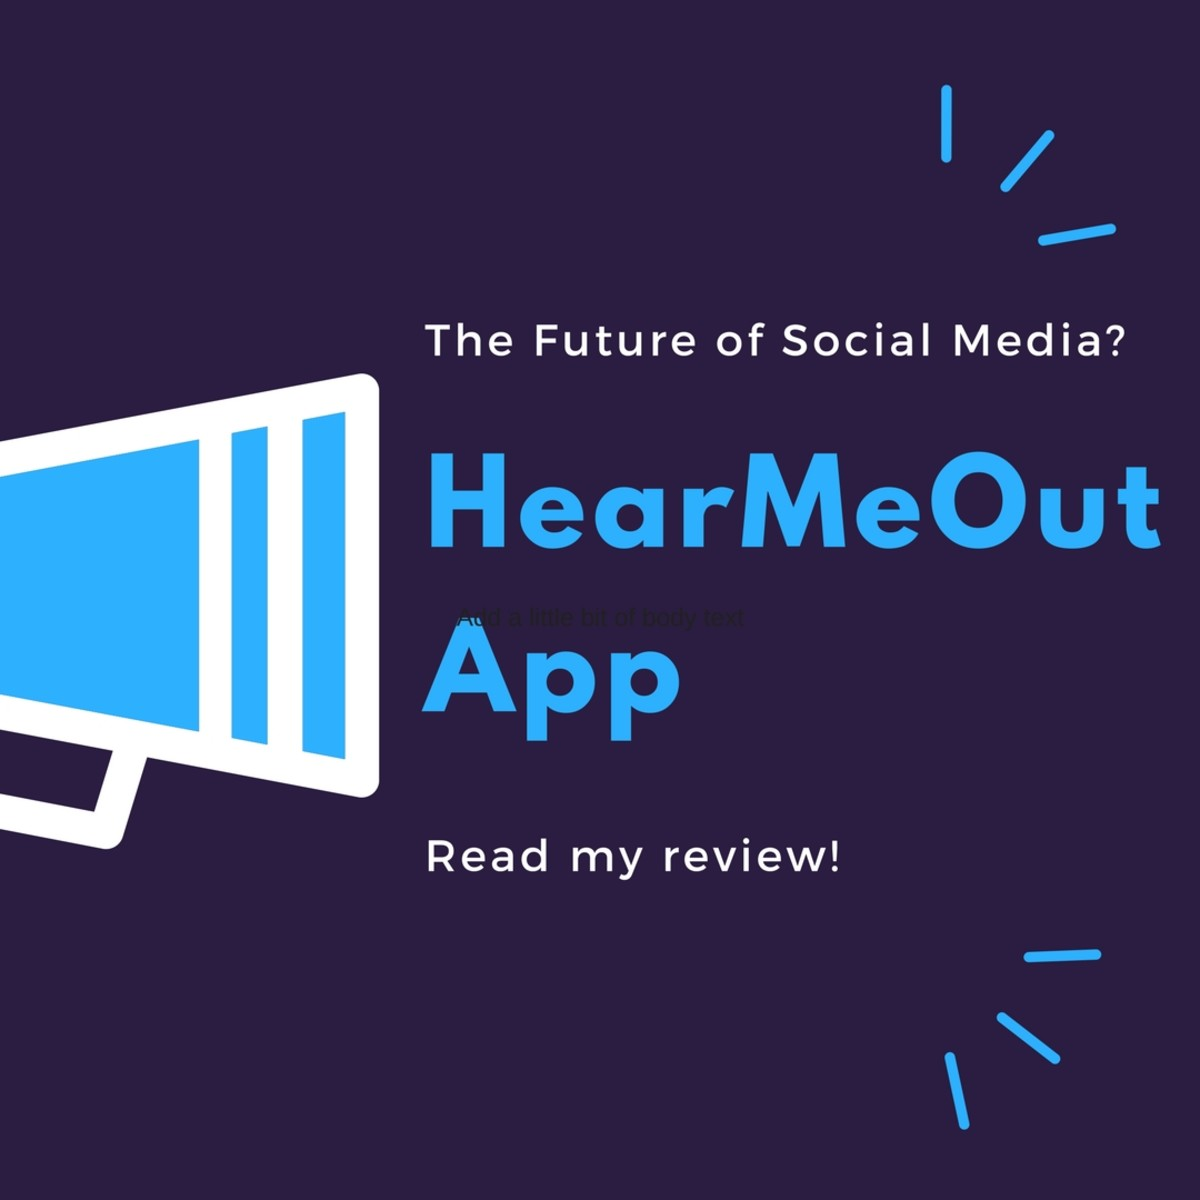 HearMeOut App: The Future of Social Media?